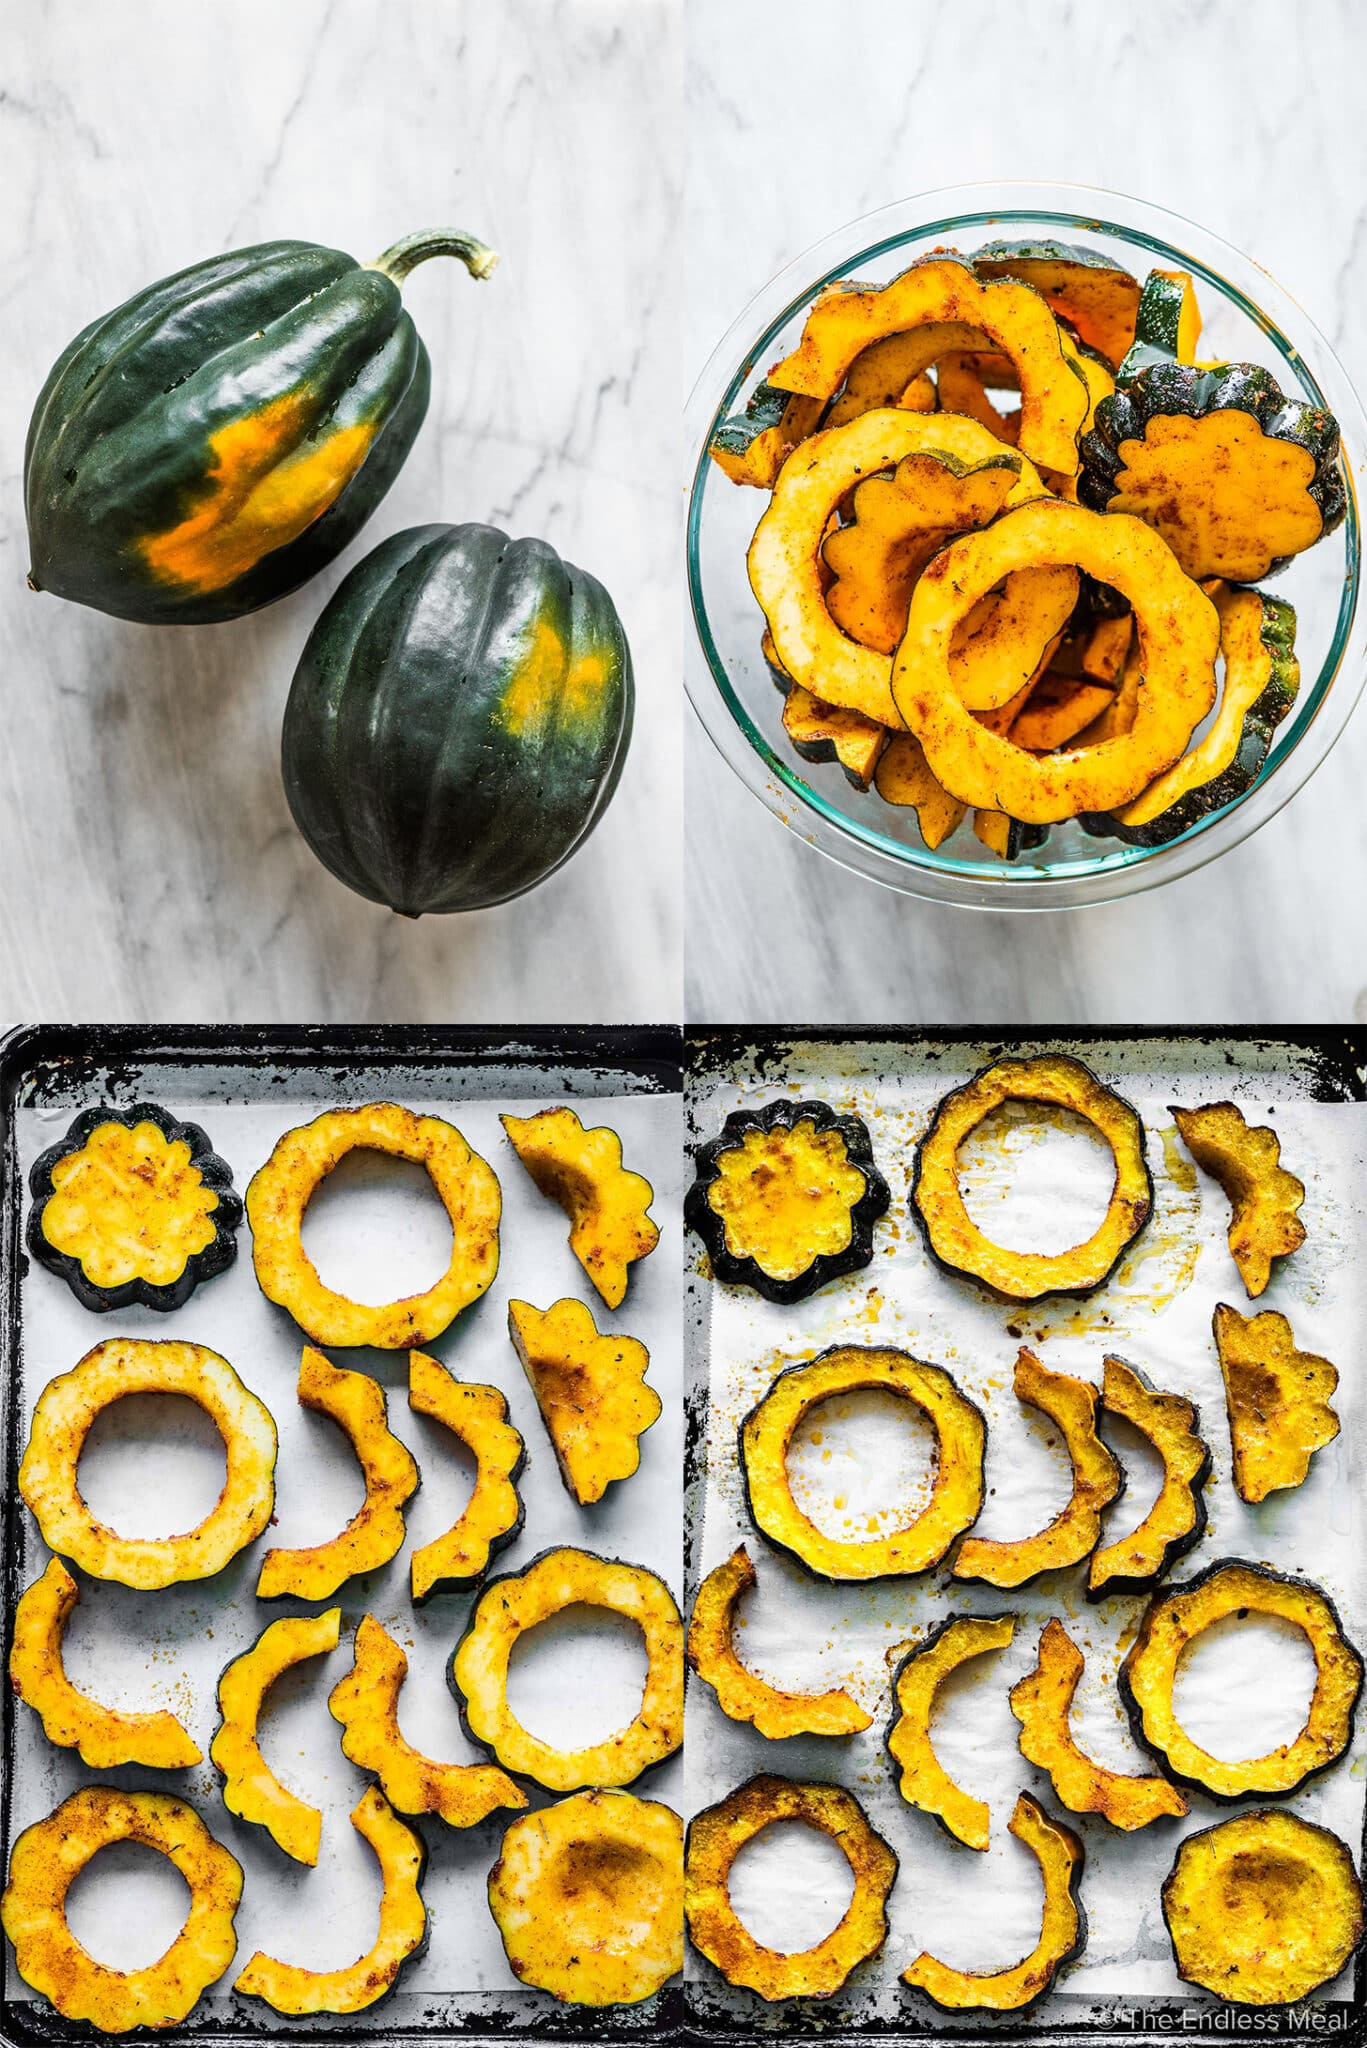 4 pictures showing how to bake acorn squash.